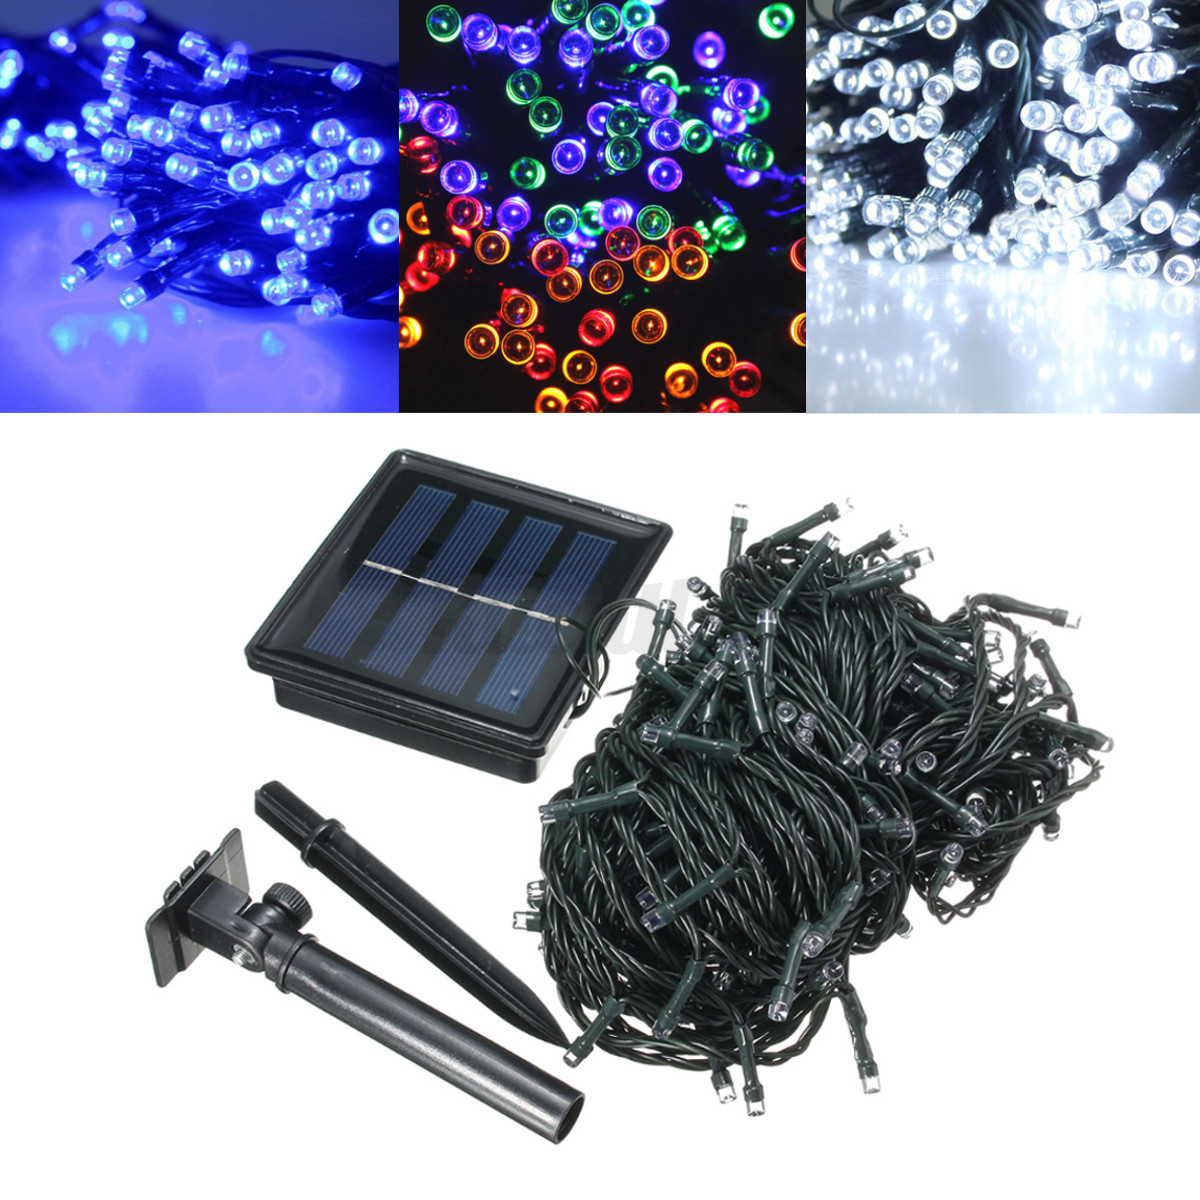 1 50m led lichterkette batterie solar licht leiste weihnachtslicht paty au en ebay. Black Bedroom Furniture Sets. Home Design Ideas